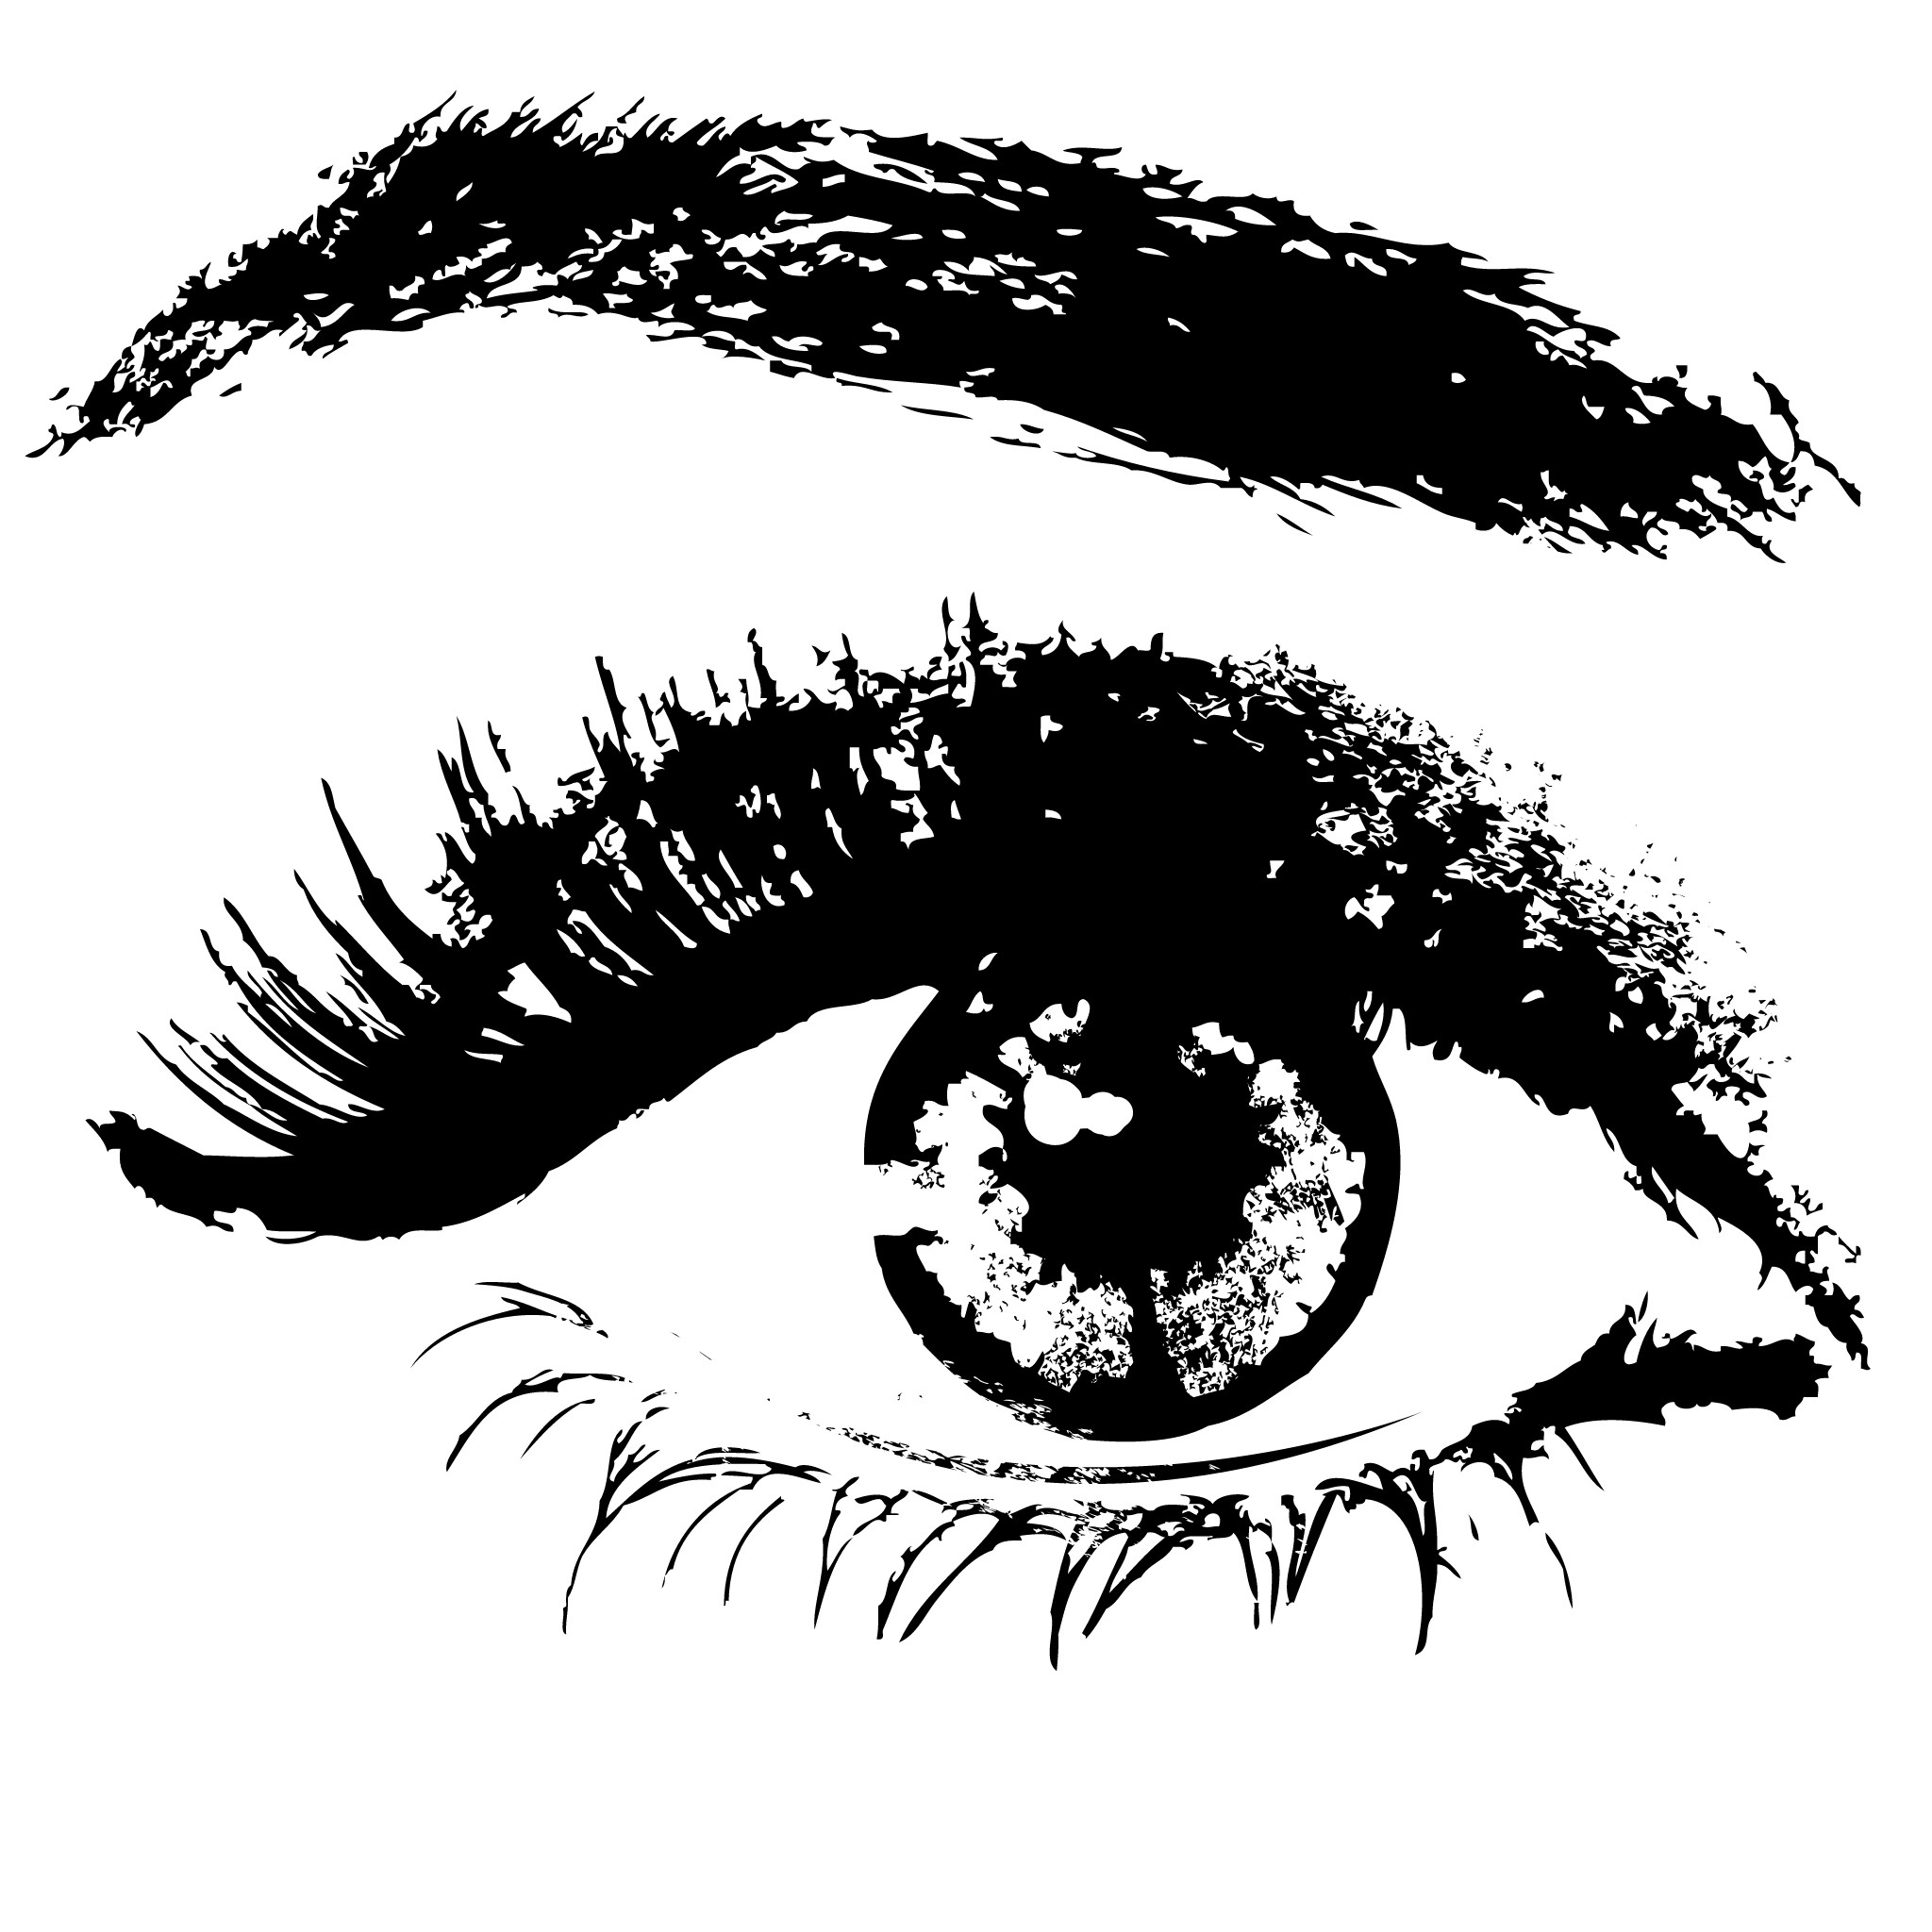 2048x2048 Blackandwhite Scanography Pretty Eye